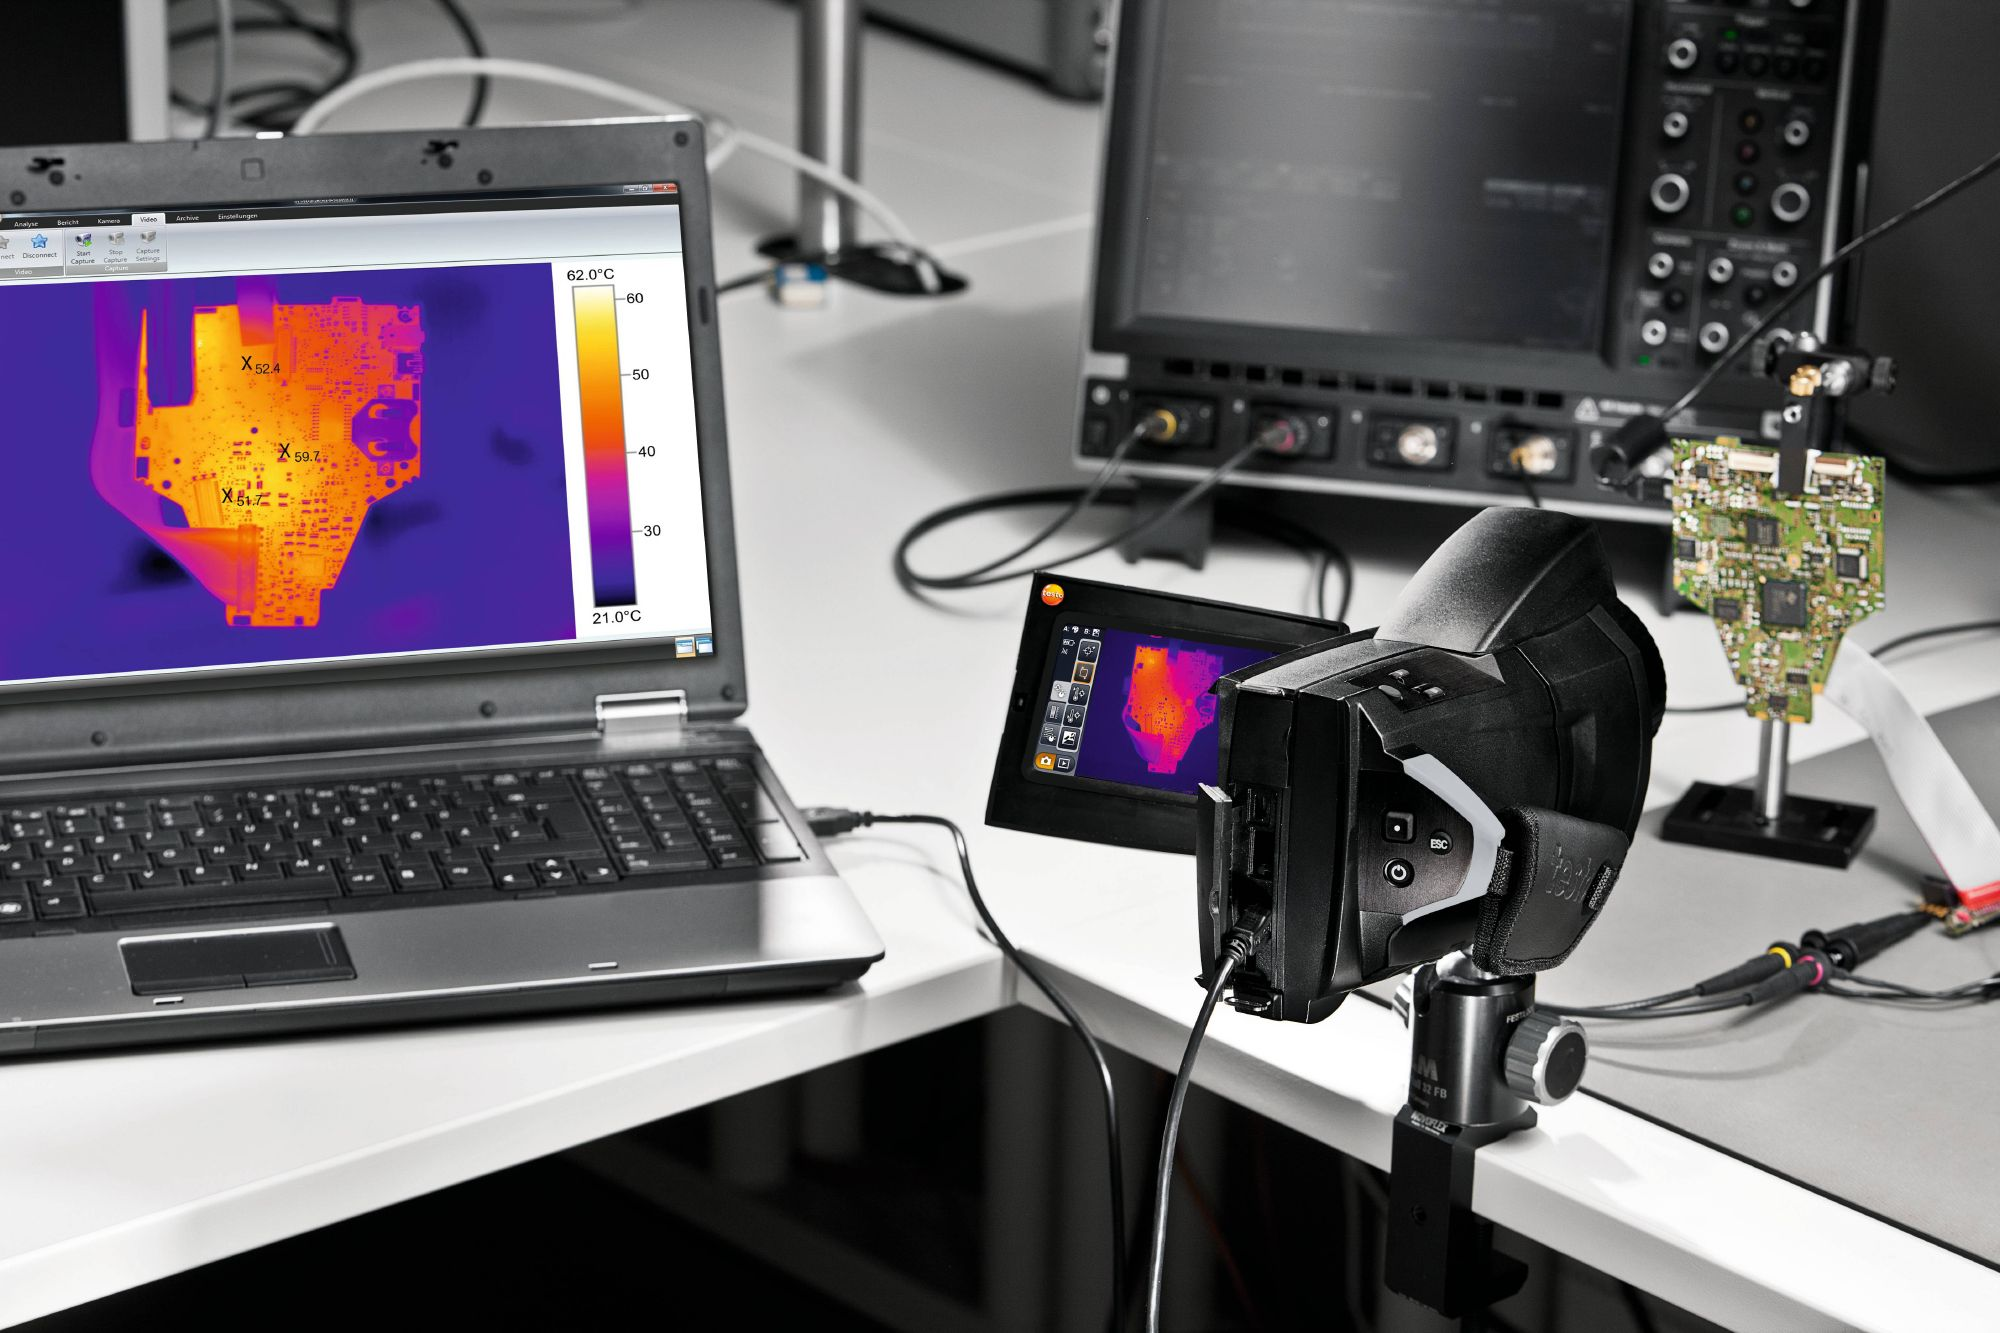 Thermal imagers for research and development